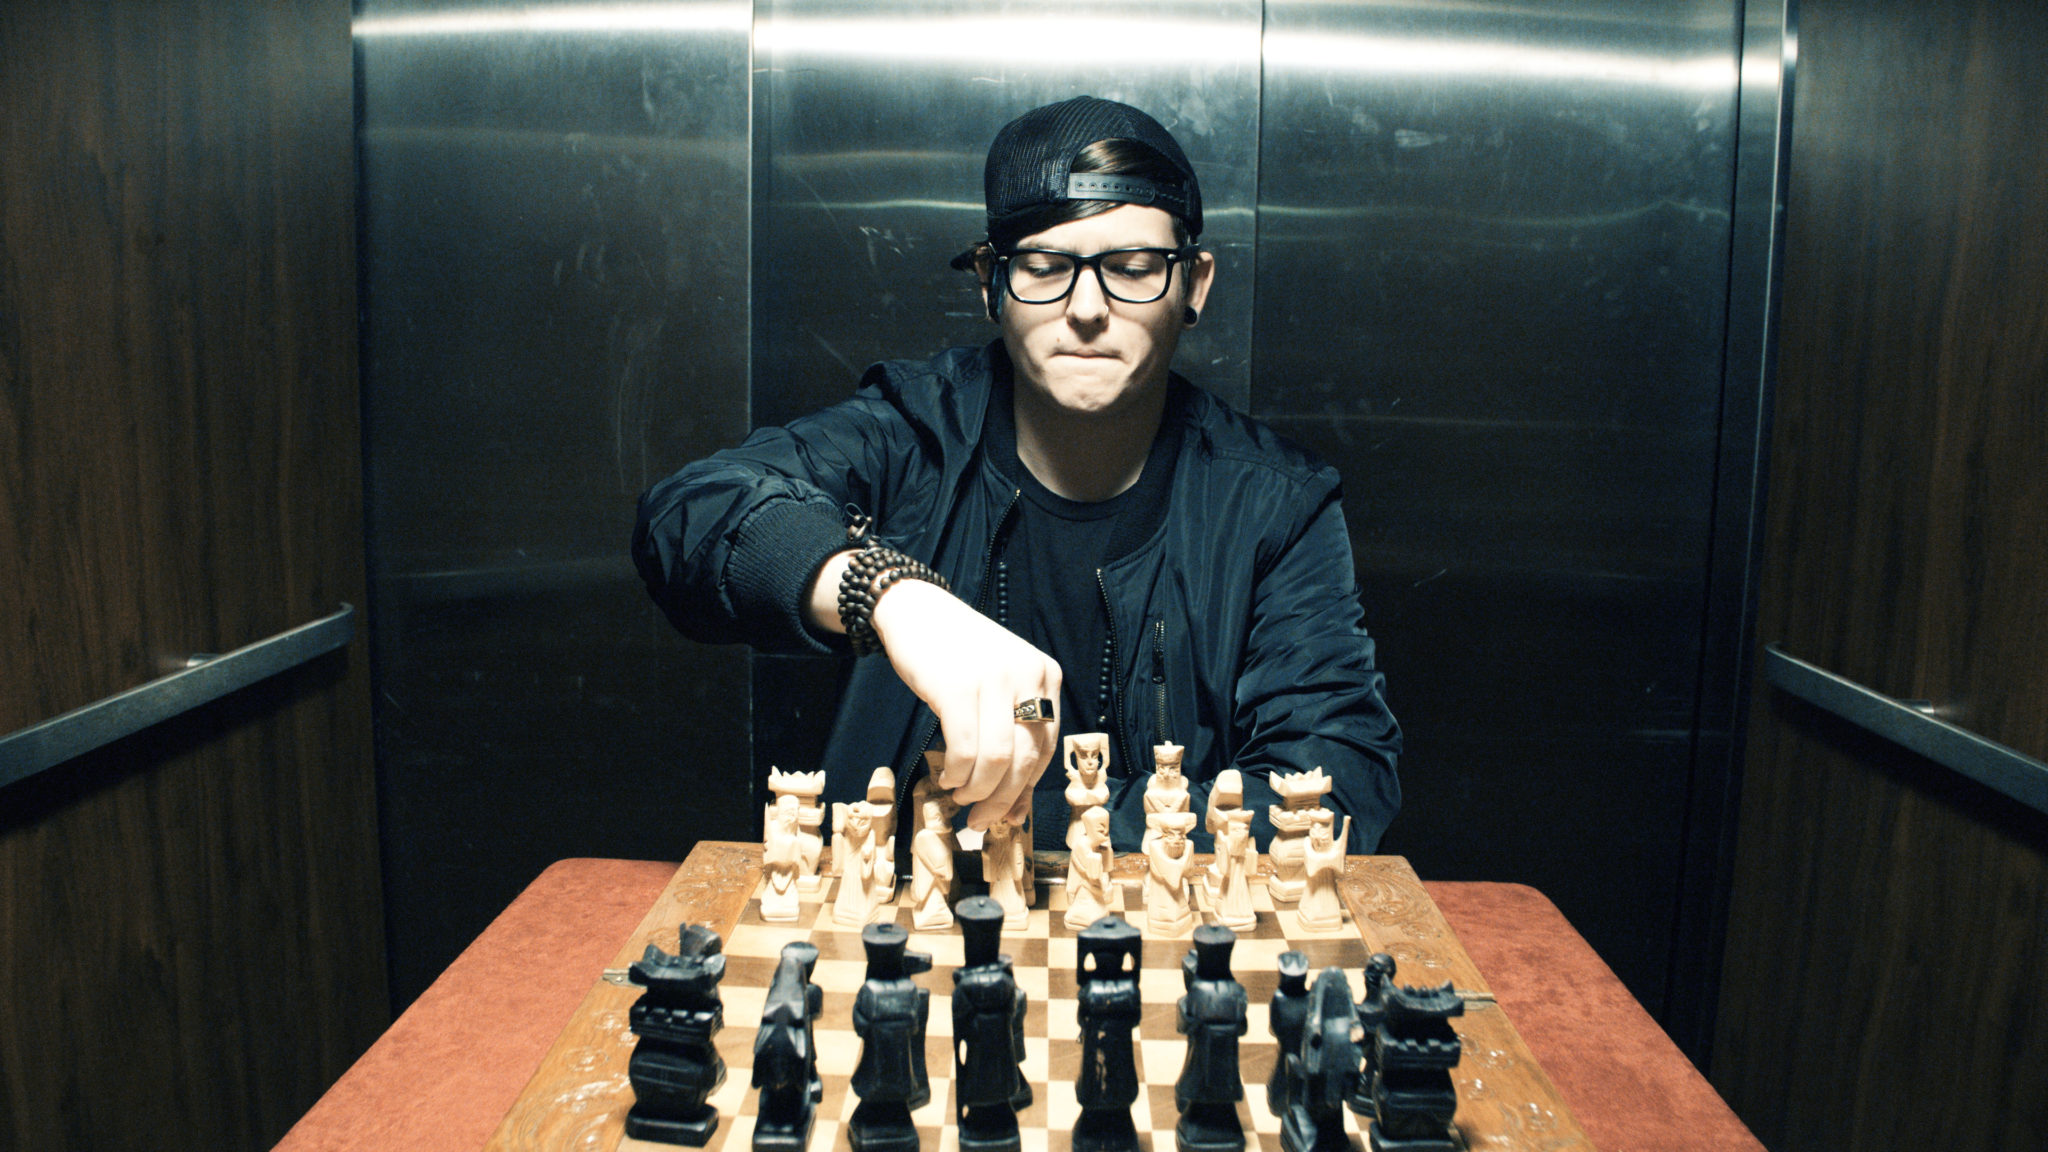 Mr. Kristopher Releases Dark Debut Video & 'Chess Moves' EP, Out Now on Afterlife Records